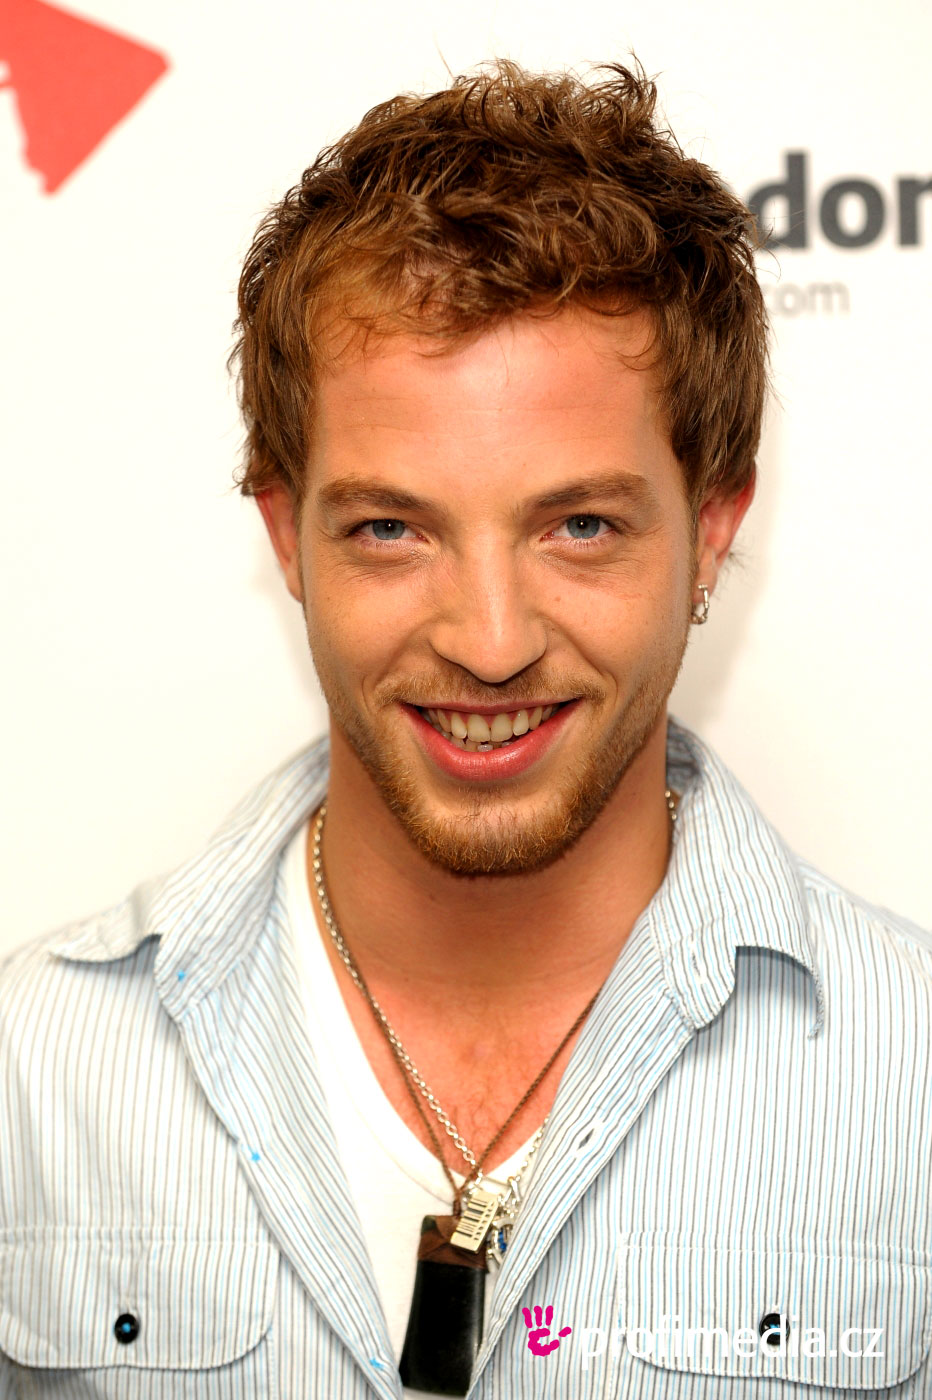 James Morrison Hairstyle Easyhairstyler